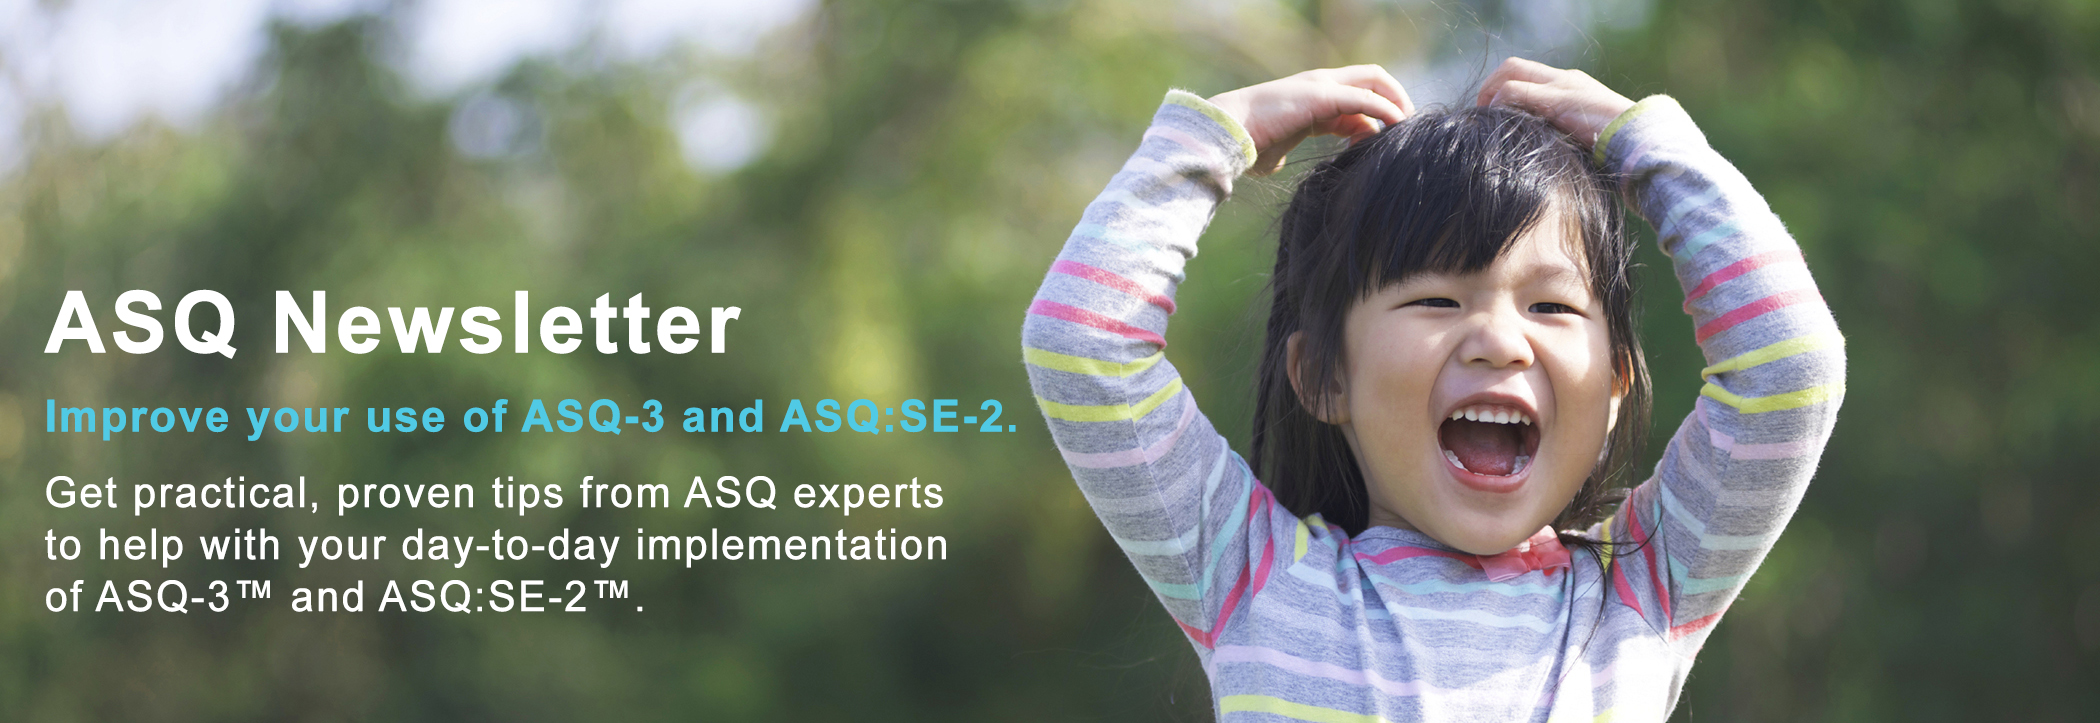 ASQ Newsletter